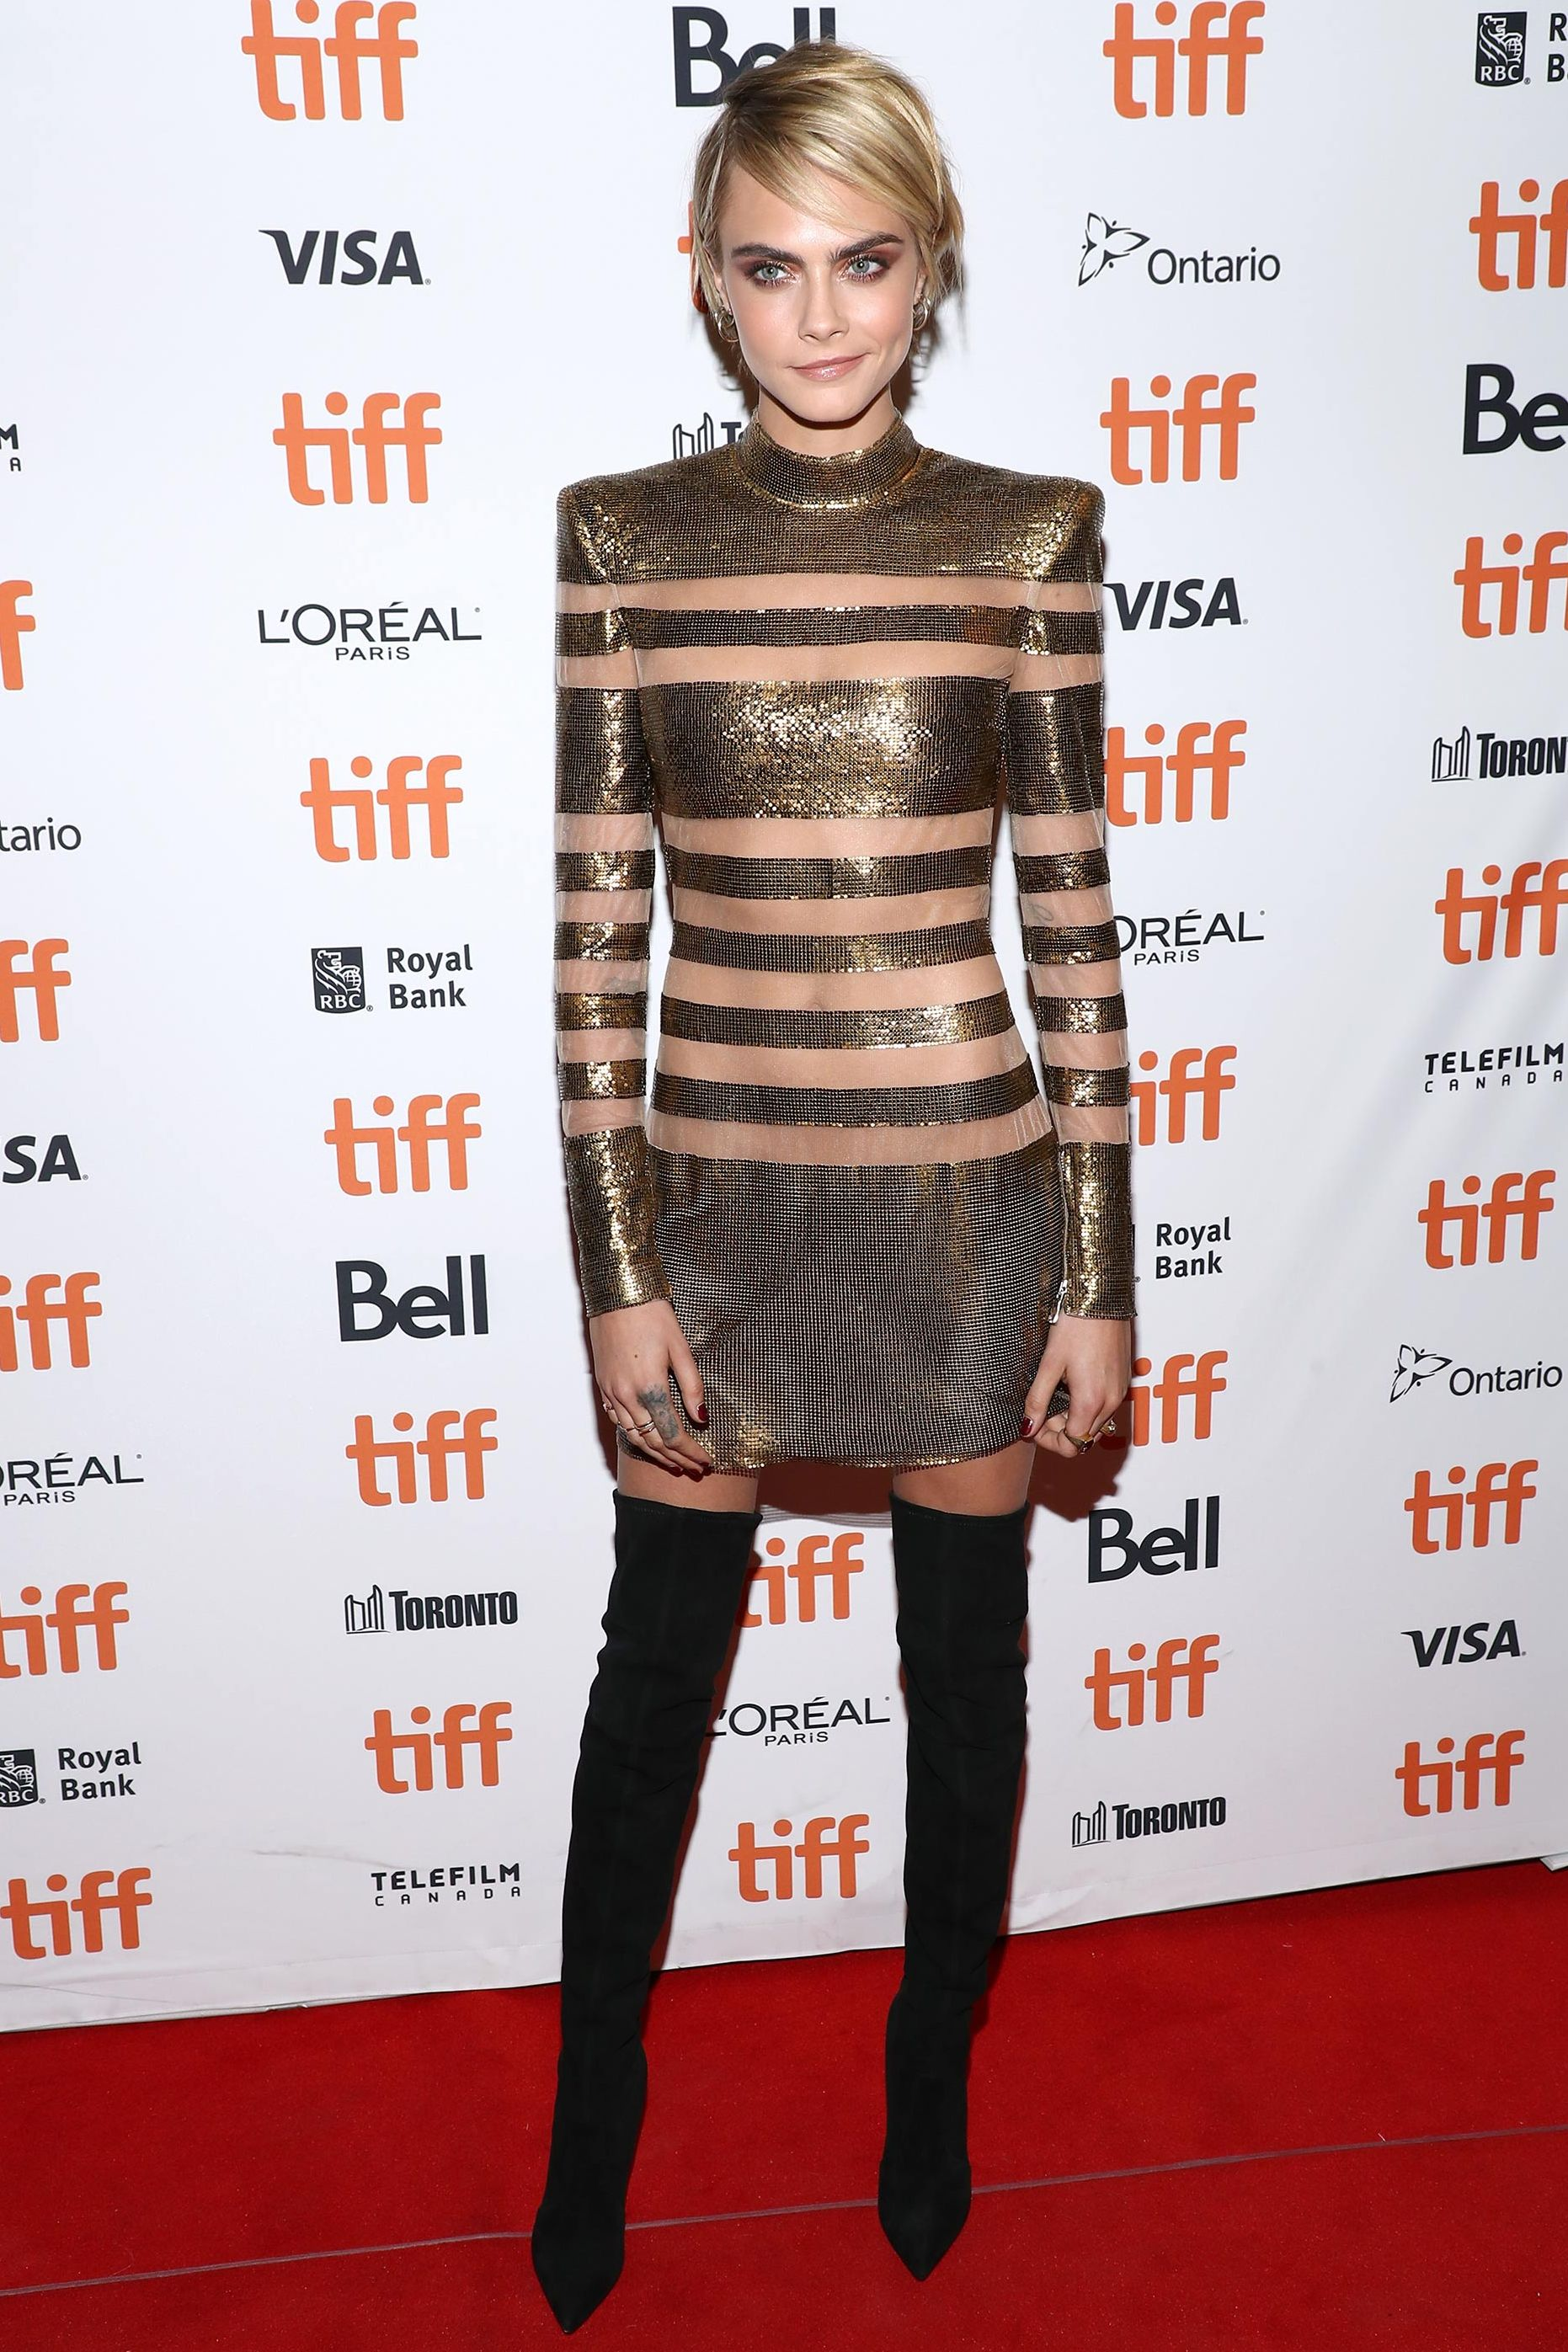 Cara Delevingne wearing a naked dress at the Toronto Film Festival